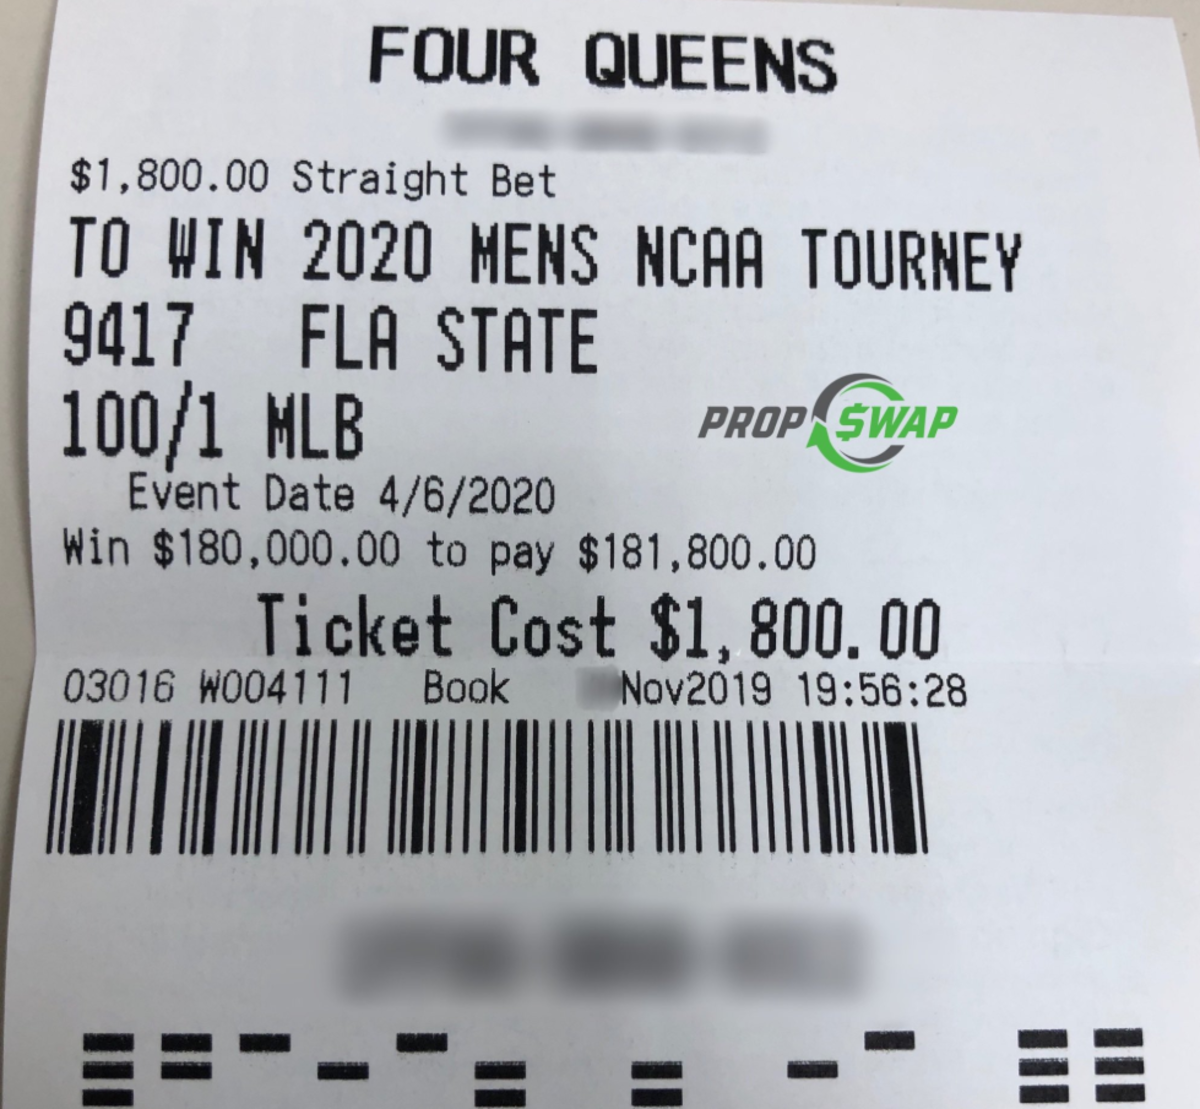 most bets on ncaa tournament